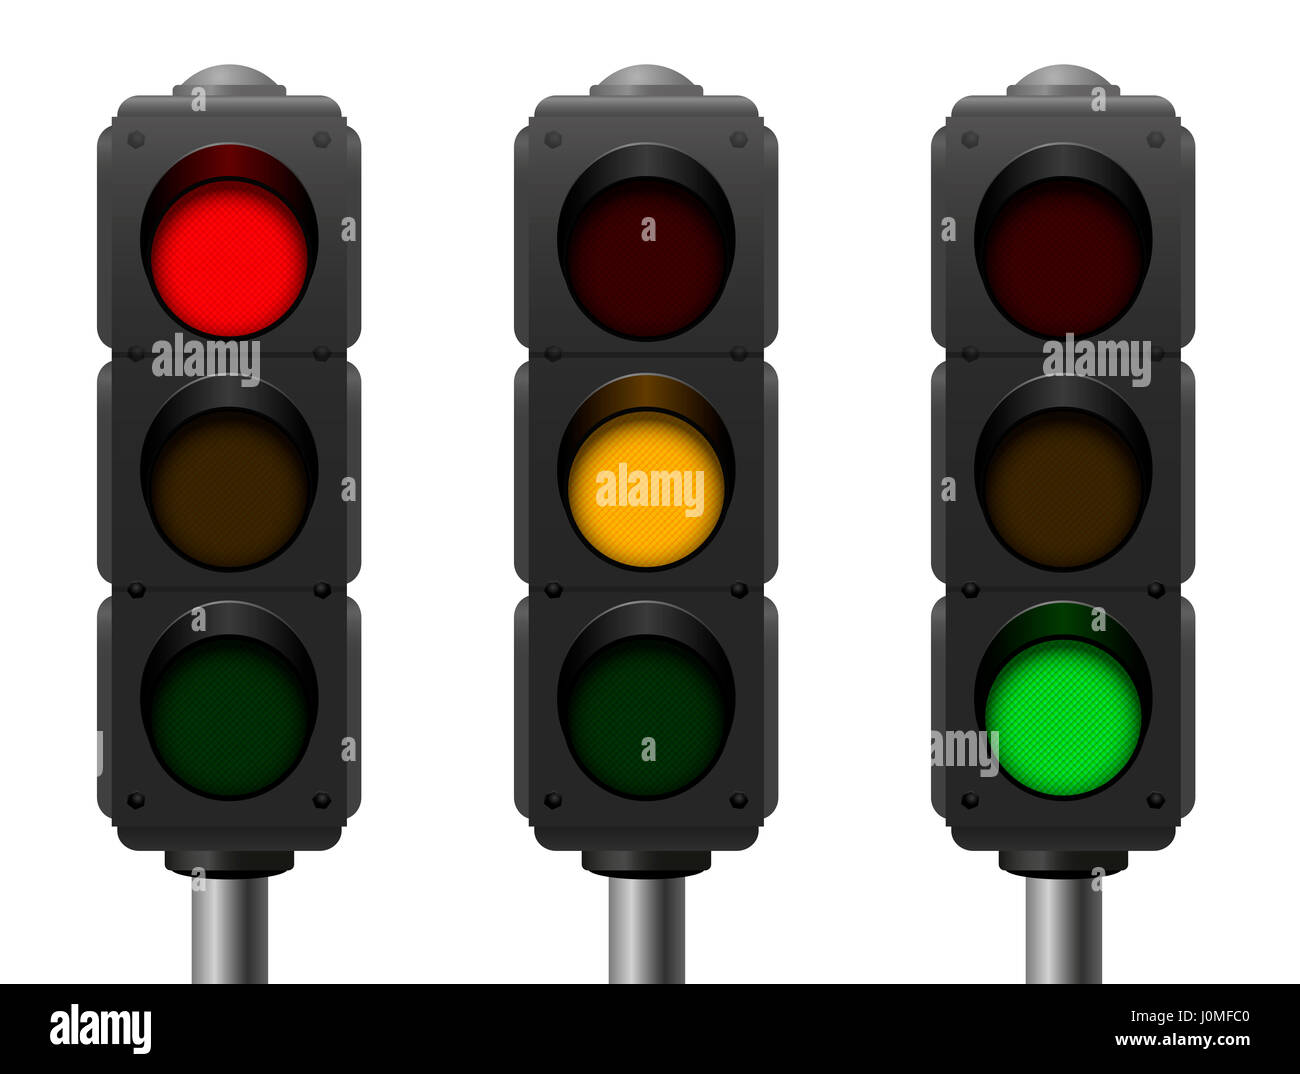 Traffic Lights With Three Different Signals